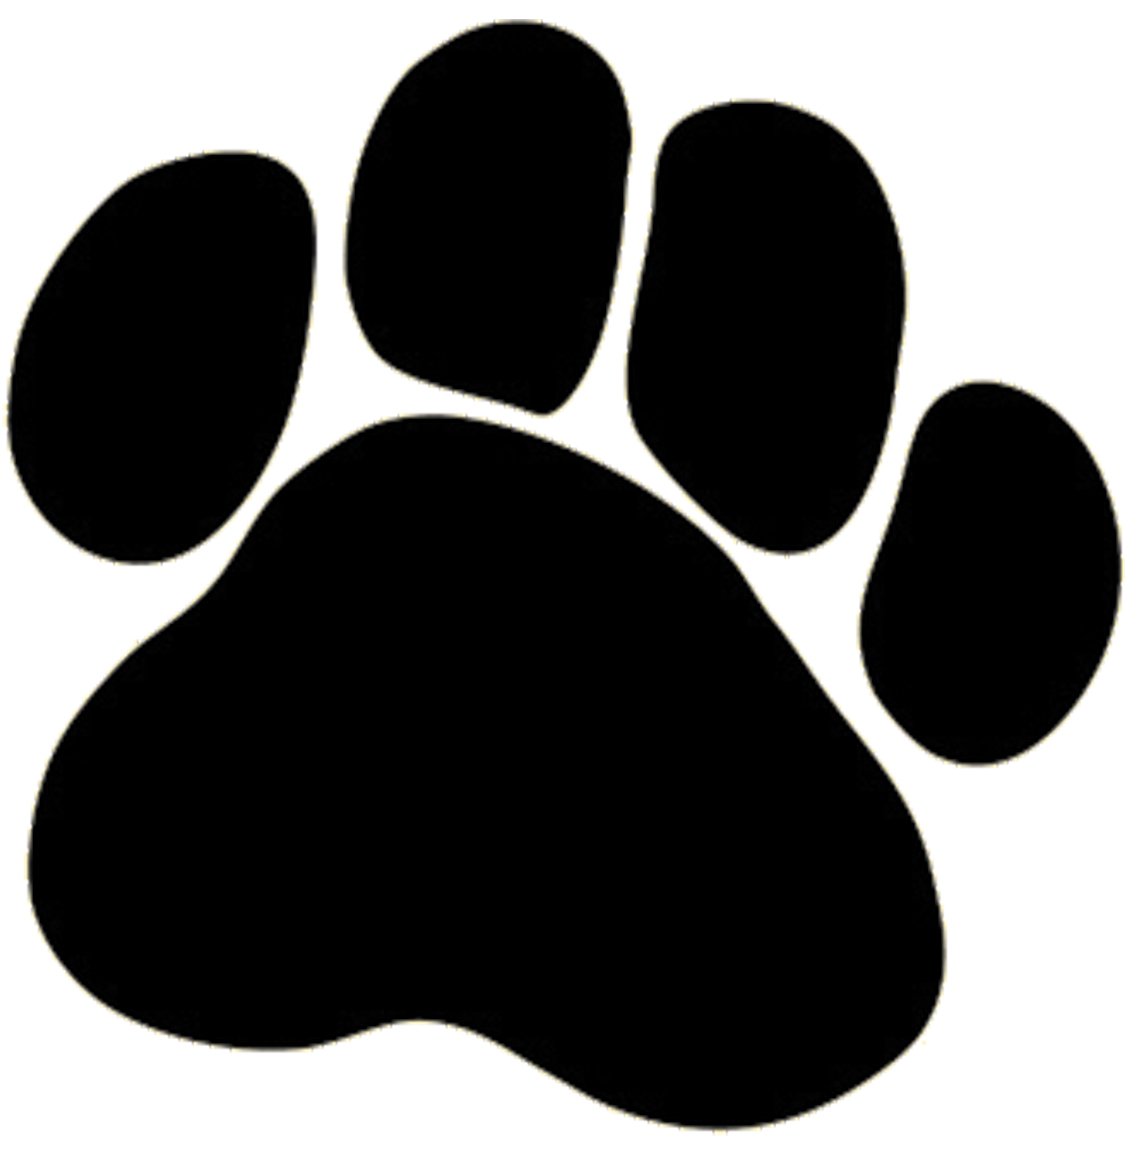 1125x1149 Dog Paw Prints Dog Paw Border Clipart Free Images 2 Wikiclipart